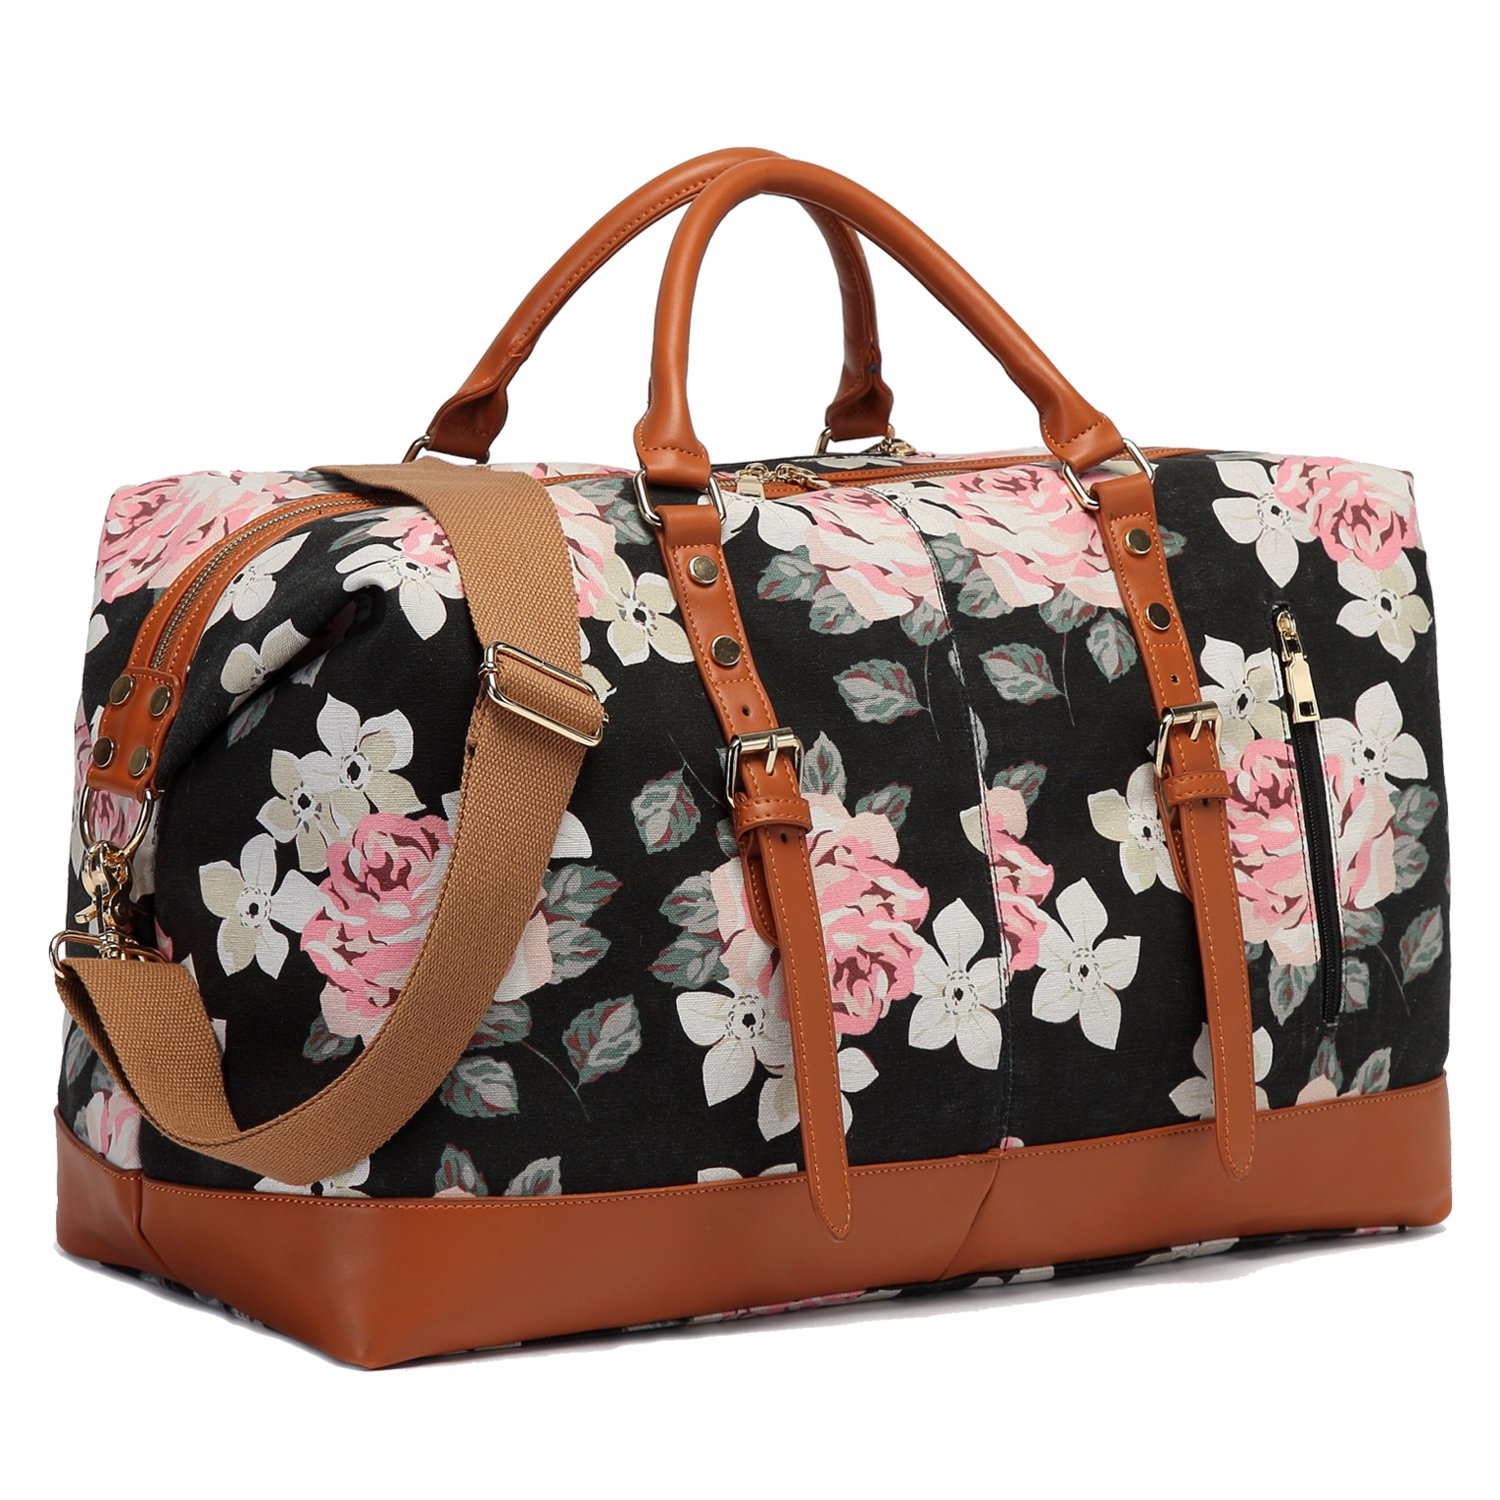 CAMTOP Weekend Travel Bag Ladies Women Duffle Tote Bags PU Leather Trim Canvas Overnight Bag